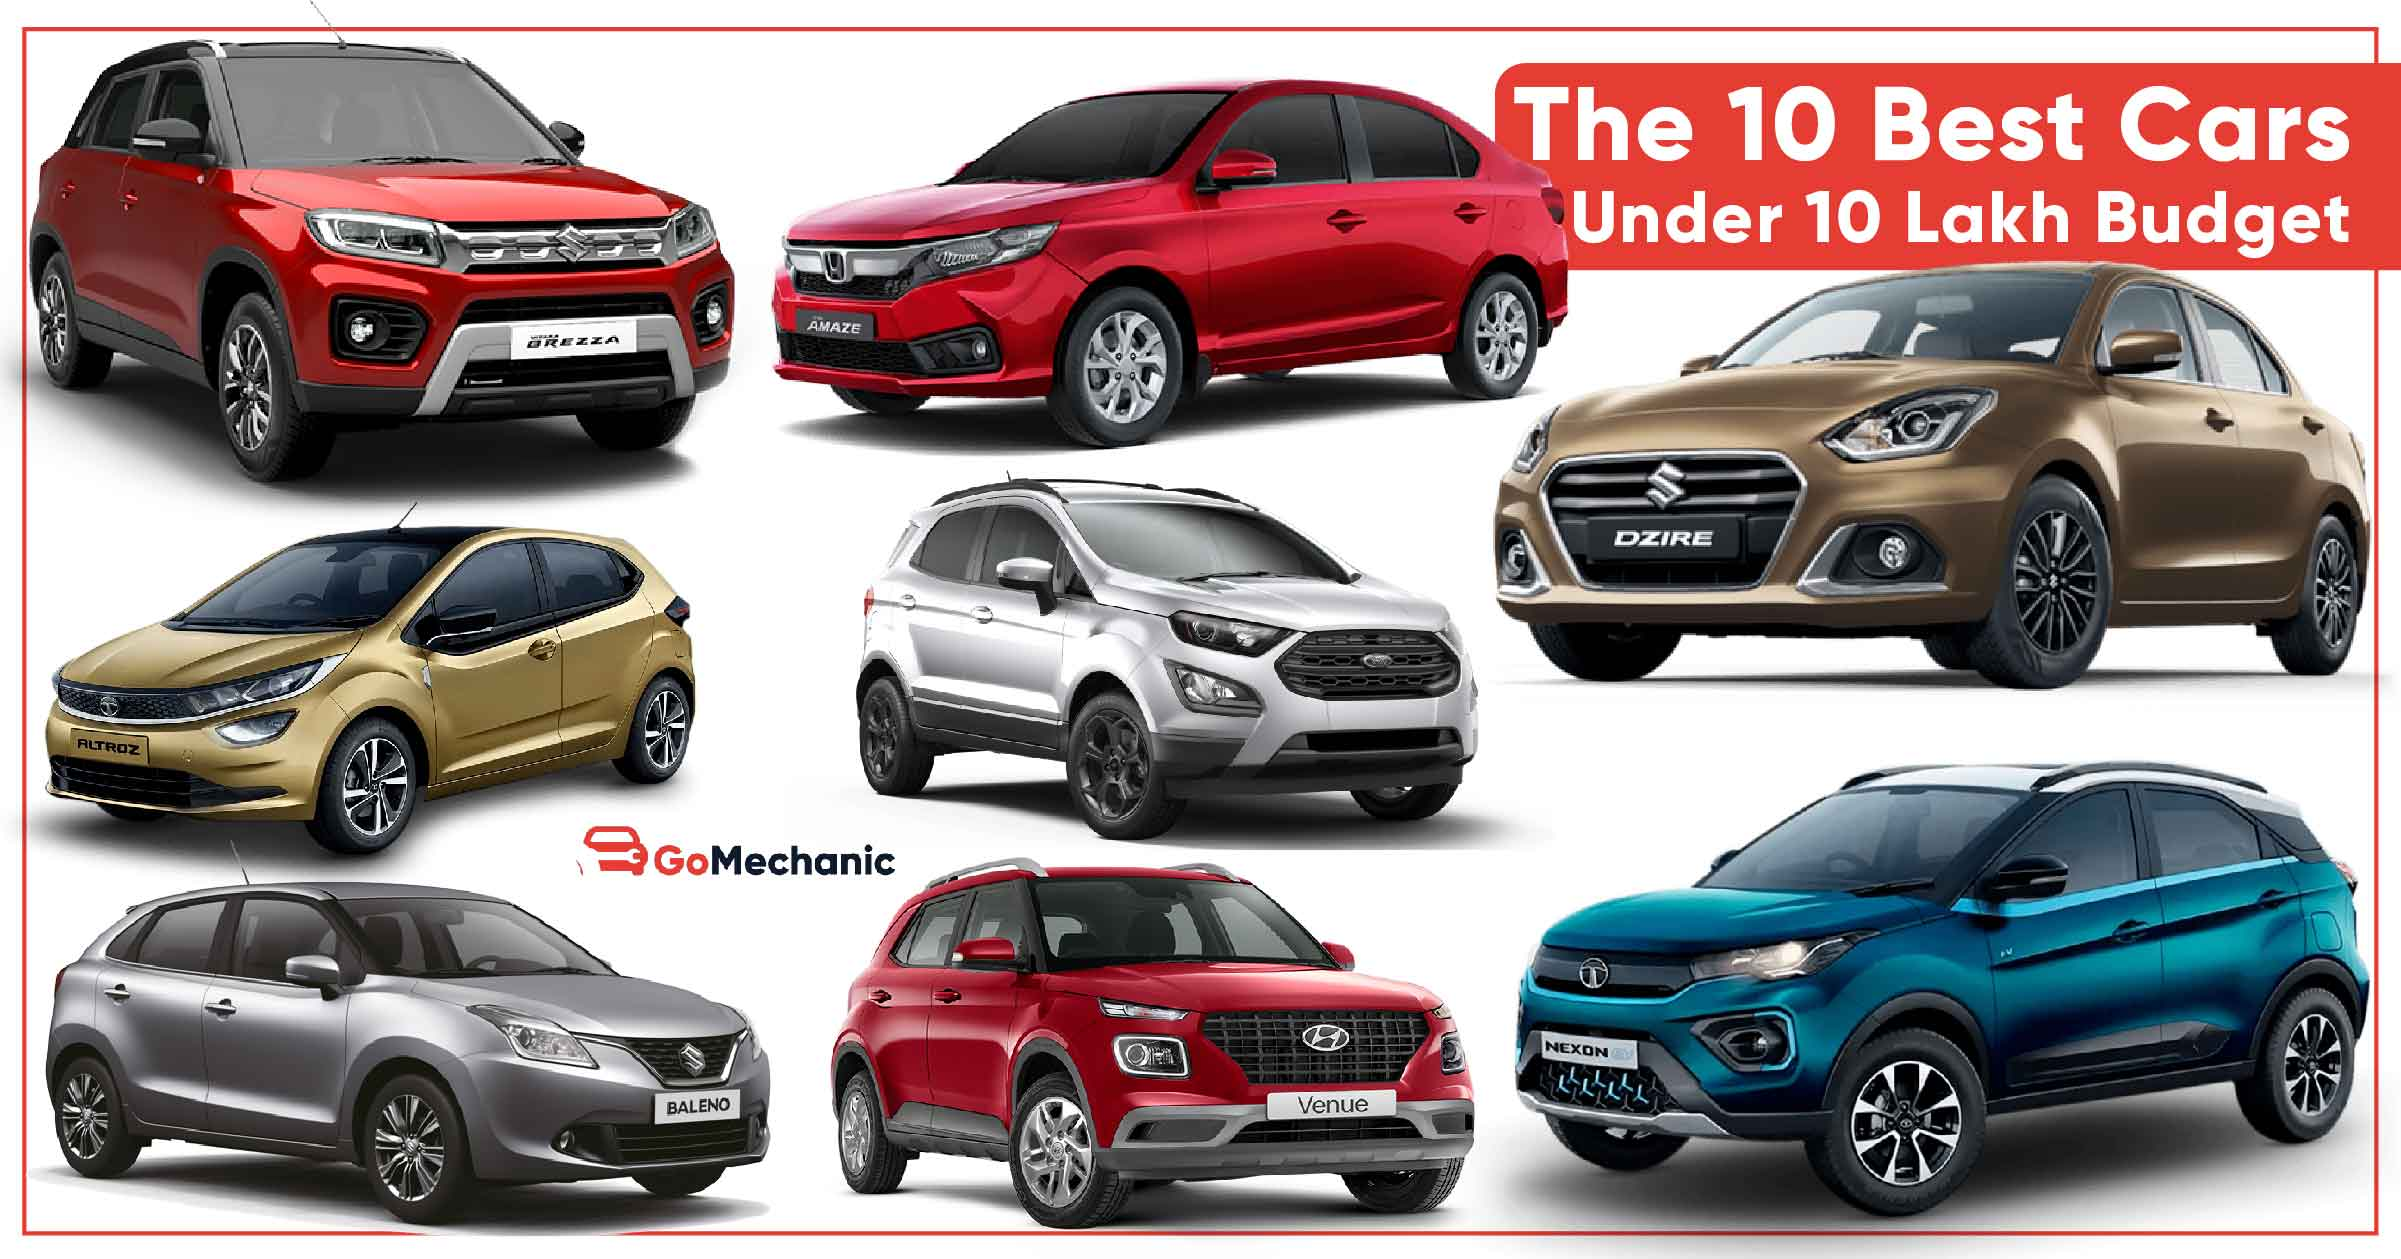 Top 10 Best Cars Under 10 Lakhs Budget